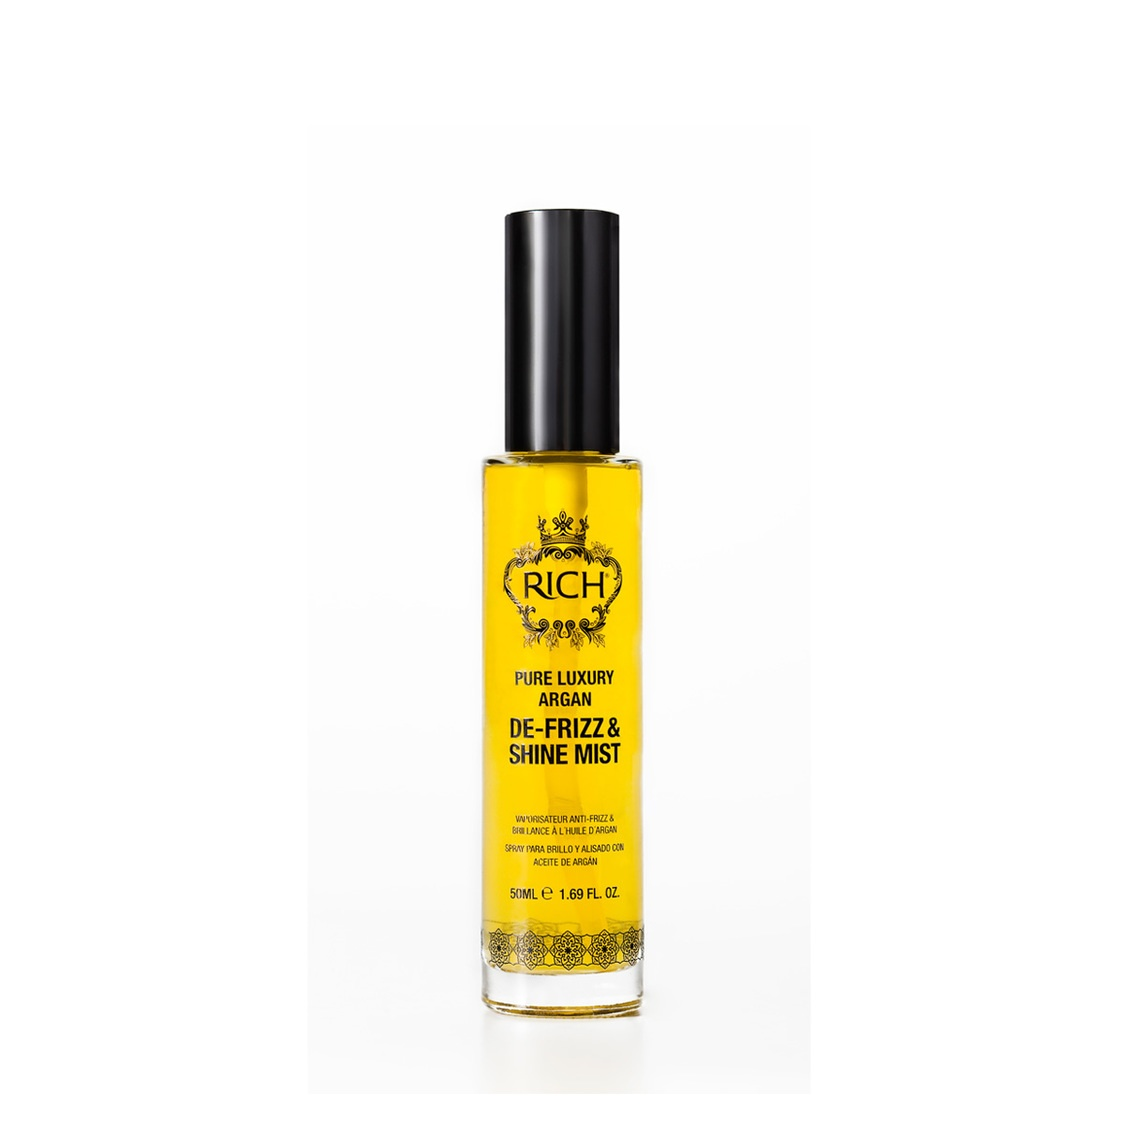 Argan De-Frizz  Shine Mist